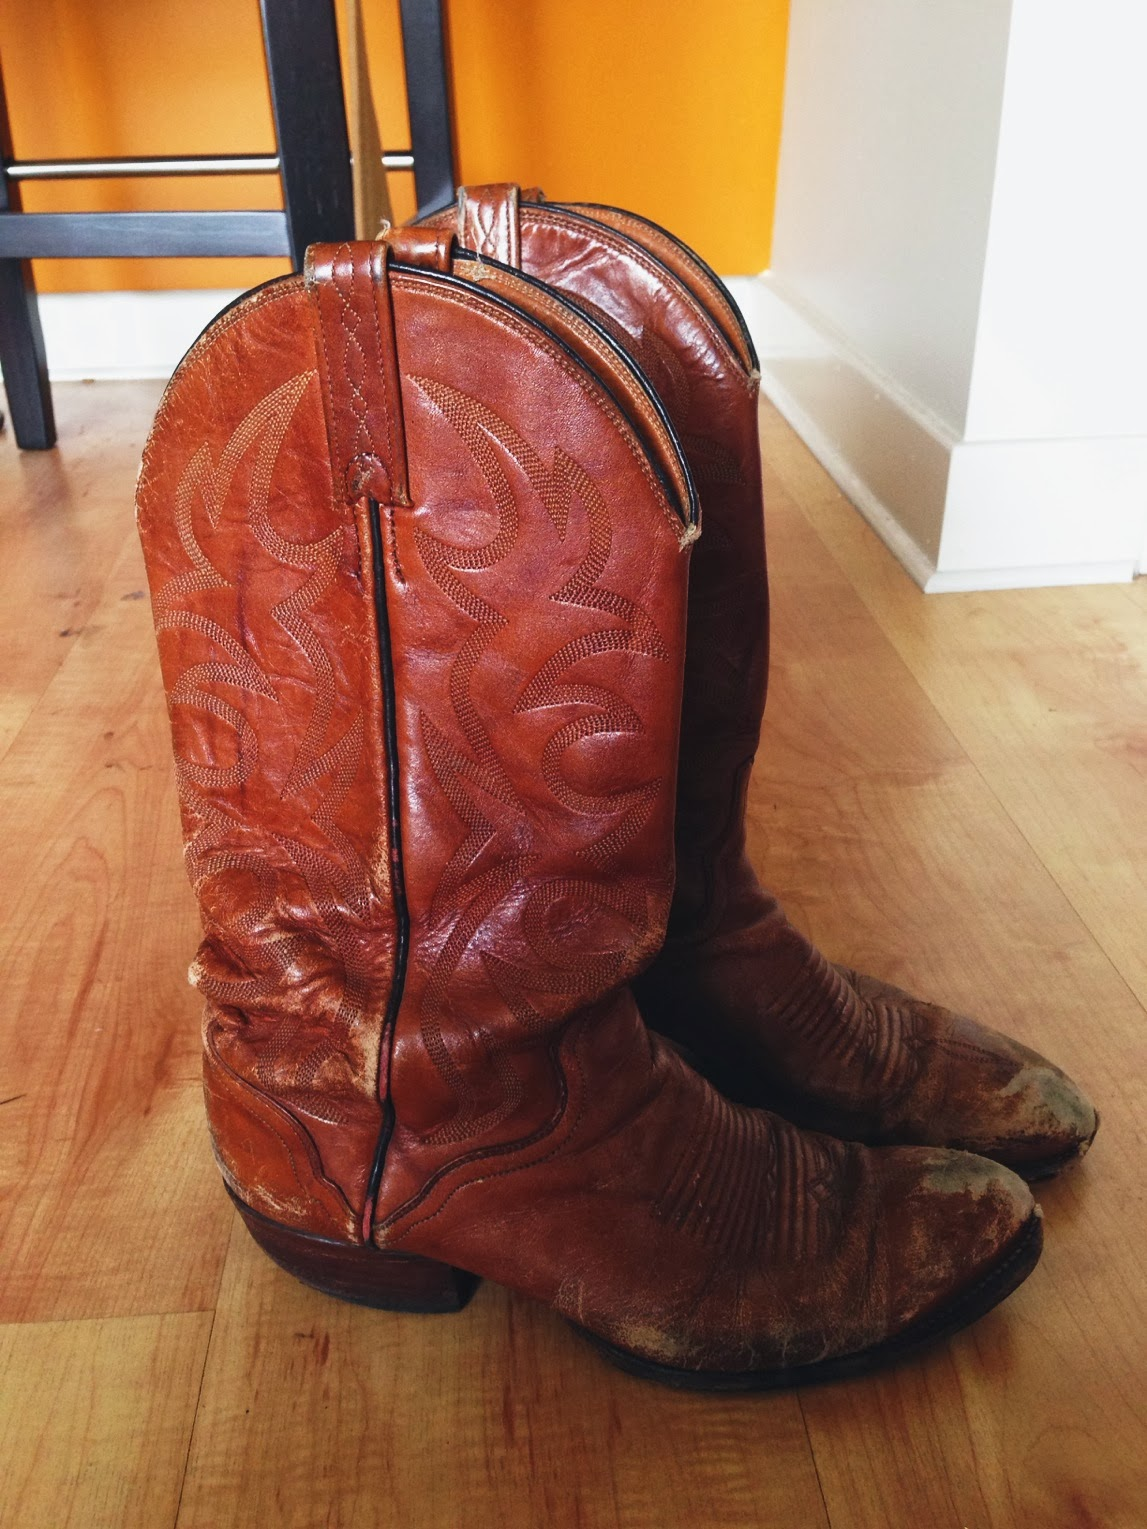 melrose, shopping, boots, cowboy, western, vintage, repurposed, leather, cute, sexy, comfortable, 2013, 2014